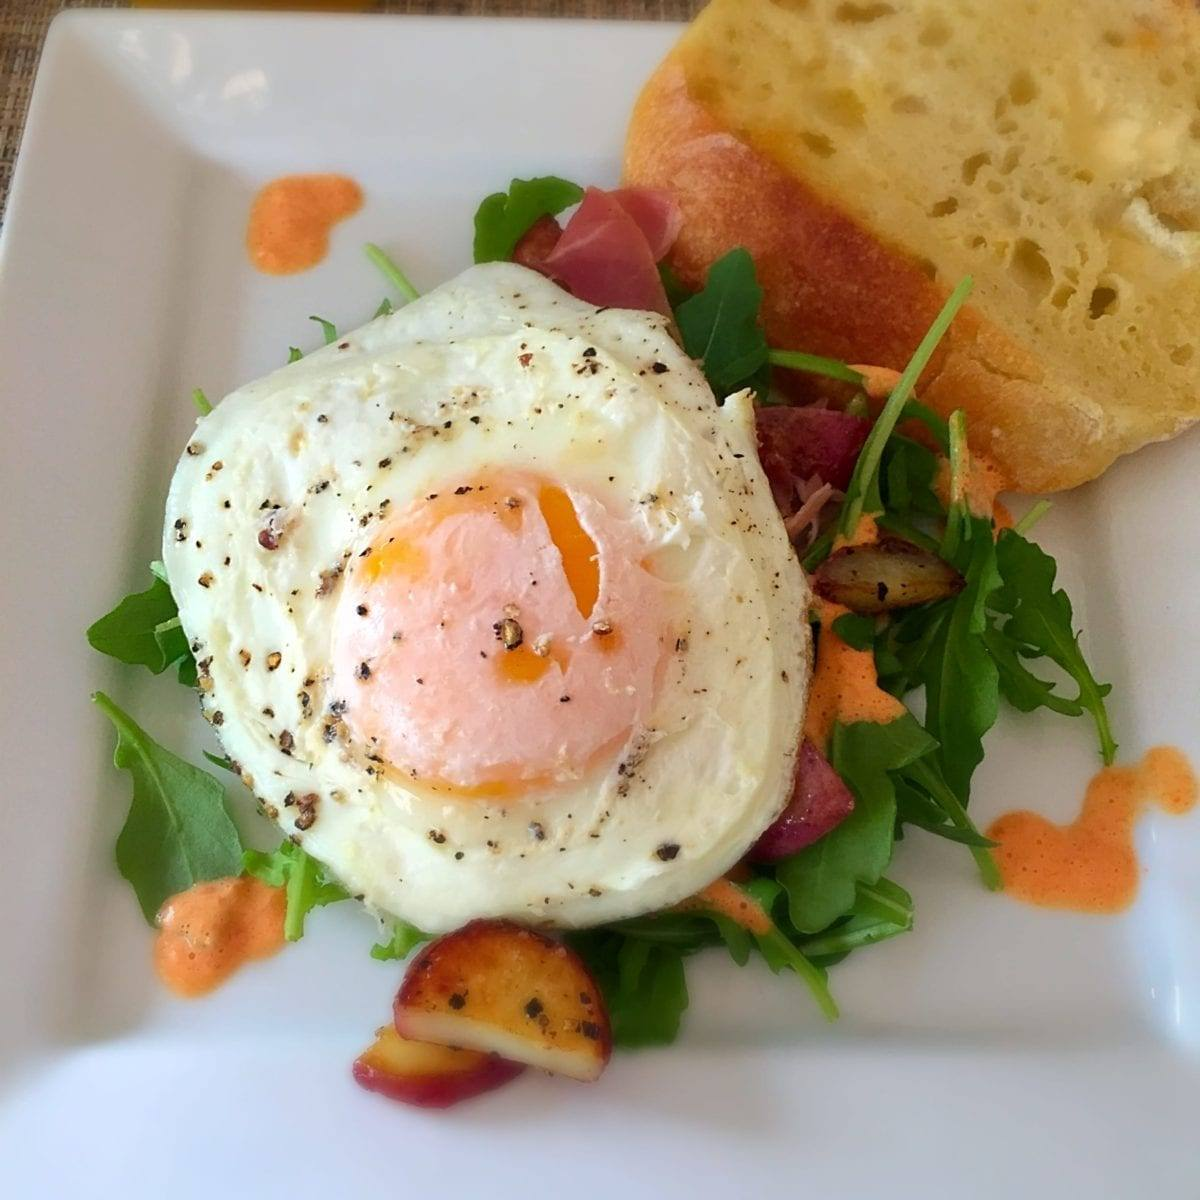 Sunny Side up Egg, over Arugula, Red Pepper Cream, Sautéed Potatoes and Prosciutto